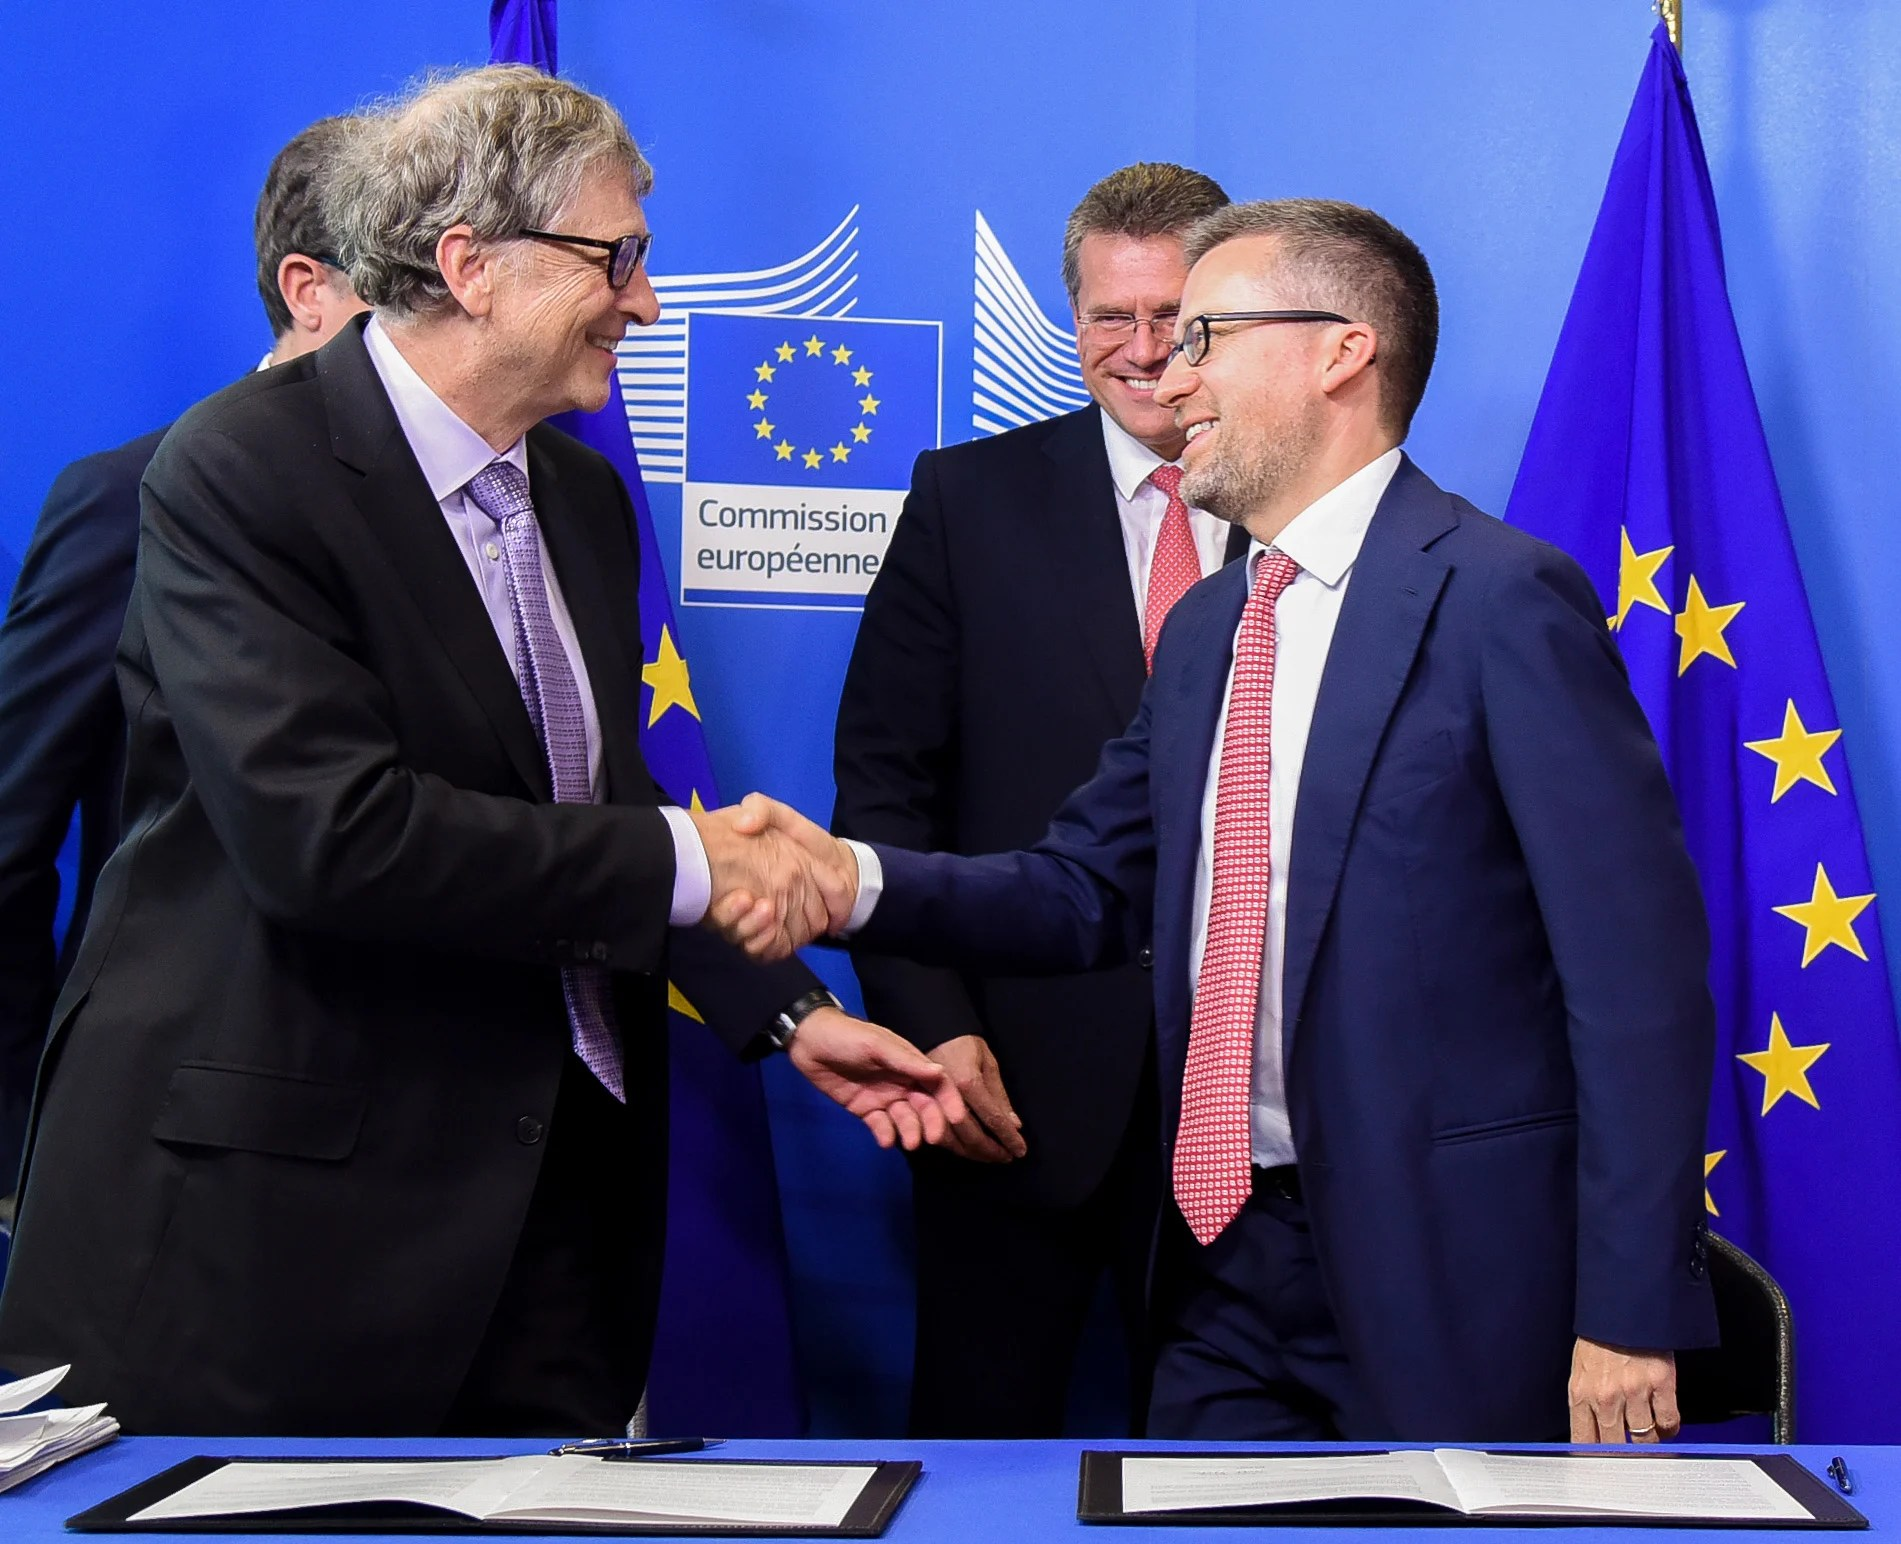 Bill Gates and Commissoner Carlos Moedas committed to establish a fund to get radical new clean energy technologies to market.